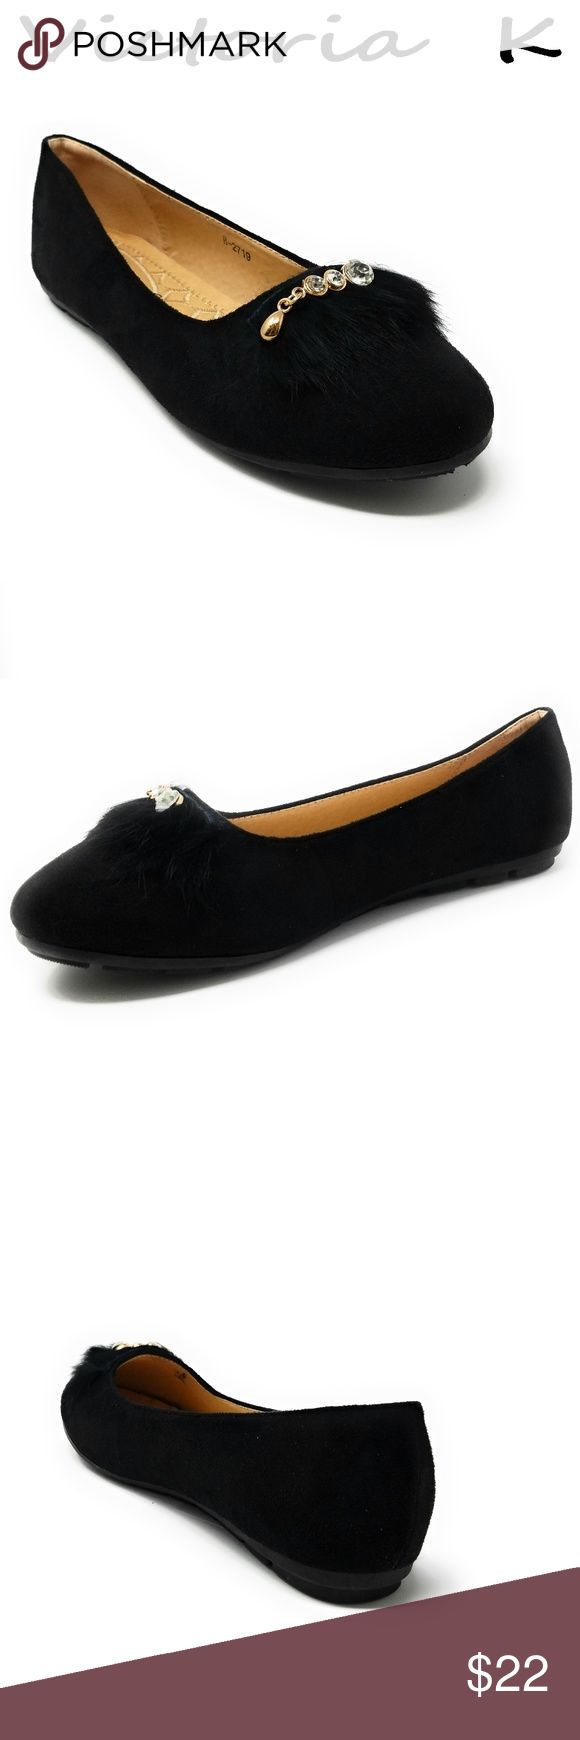 """Feather Embellished Buckle Flats, B-2719, Black Brand new beautiful women flats with a feather embellished, crystal studded buckle. Diligently crafted from glossy faux leather upper with extra soft insoles and a textured rubberized outer sole for traction.  Measurements: sizes 6 through 8 are true to size. Sizes 8.5 - 11 run small. Standard 3 """" width. Size 8 measures 9.5 inches, sz 8.5 - 9 3/4"""", sz 9 - 10"""", sz 10 - 10.5"""", size 11 fits a true size 9.5 wearer. Slip it on and make a true…"""